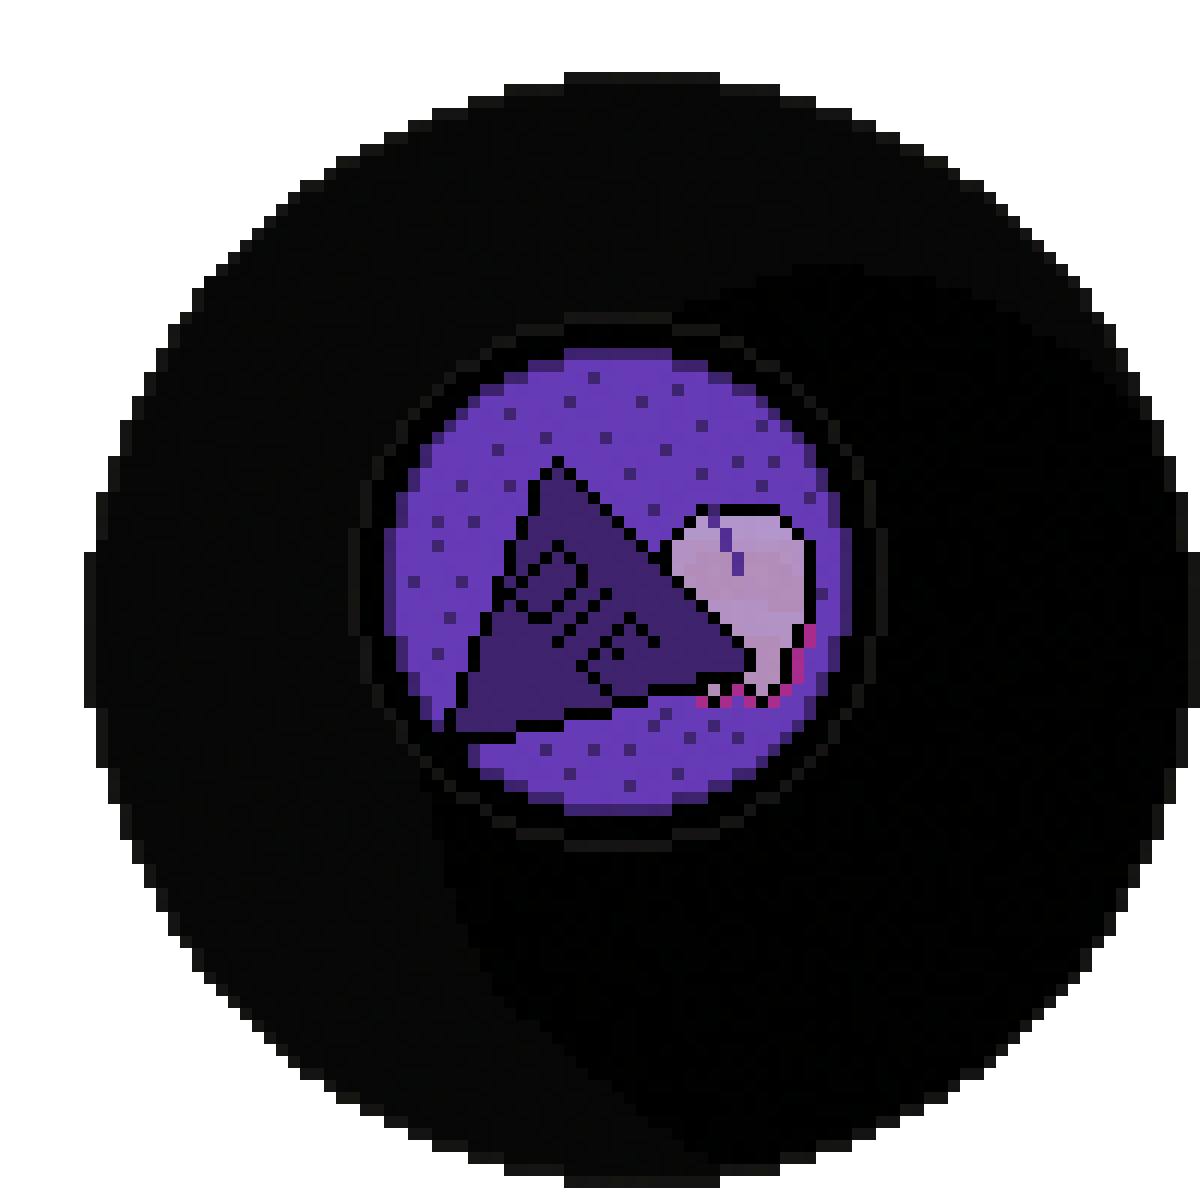 8-ball by SyringeSoup